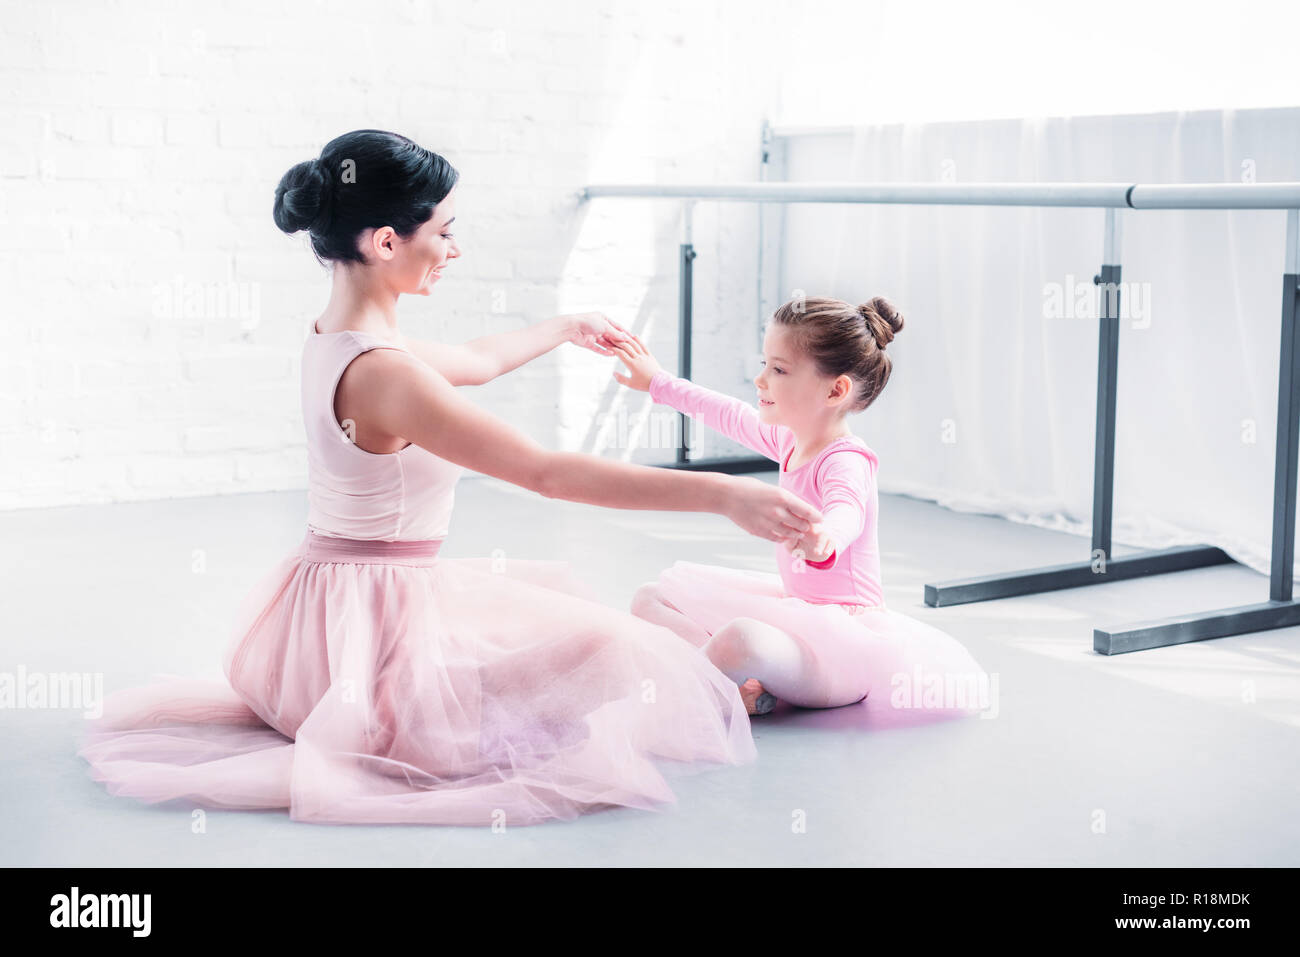 side view of ballet teacher and little student in pink tutu skirts sitting and holding hands while training in ballet school - Stock Image